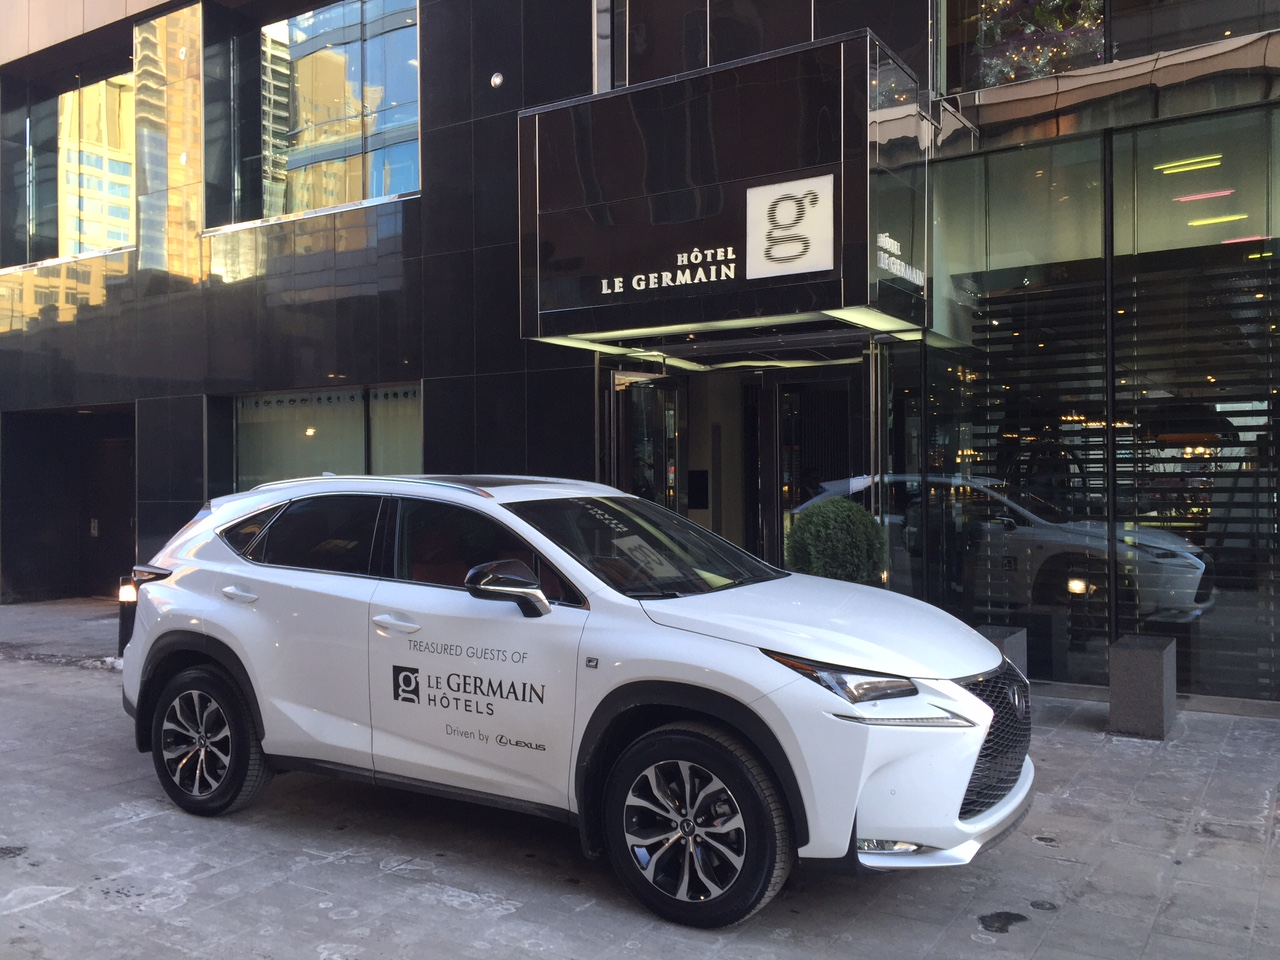 Le Germain Hotels Put Guests In The Driver's Seat Of A Lexus